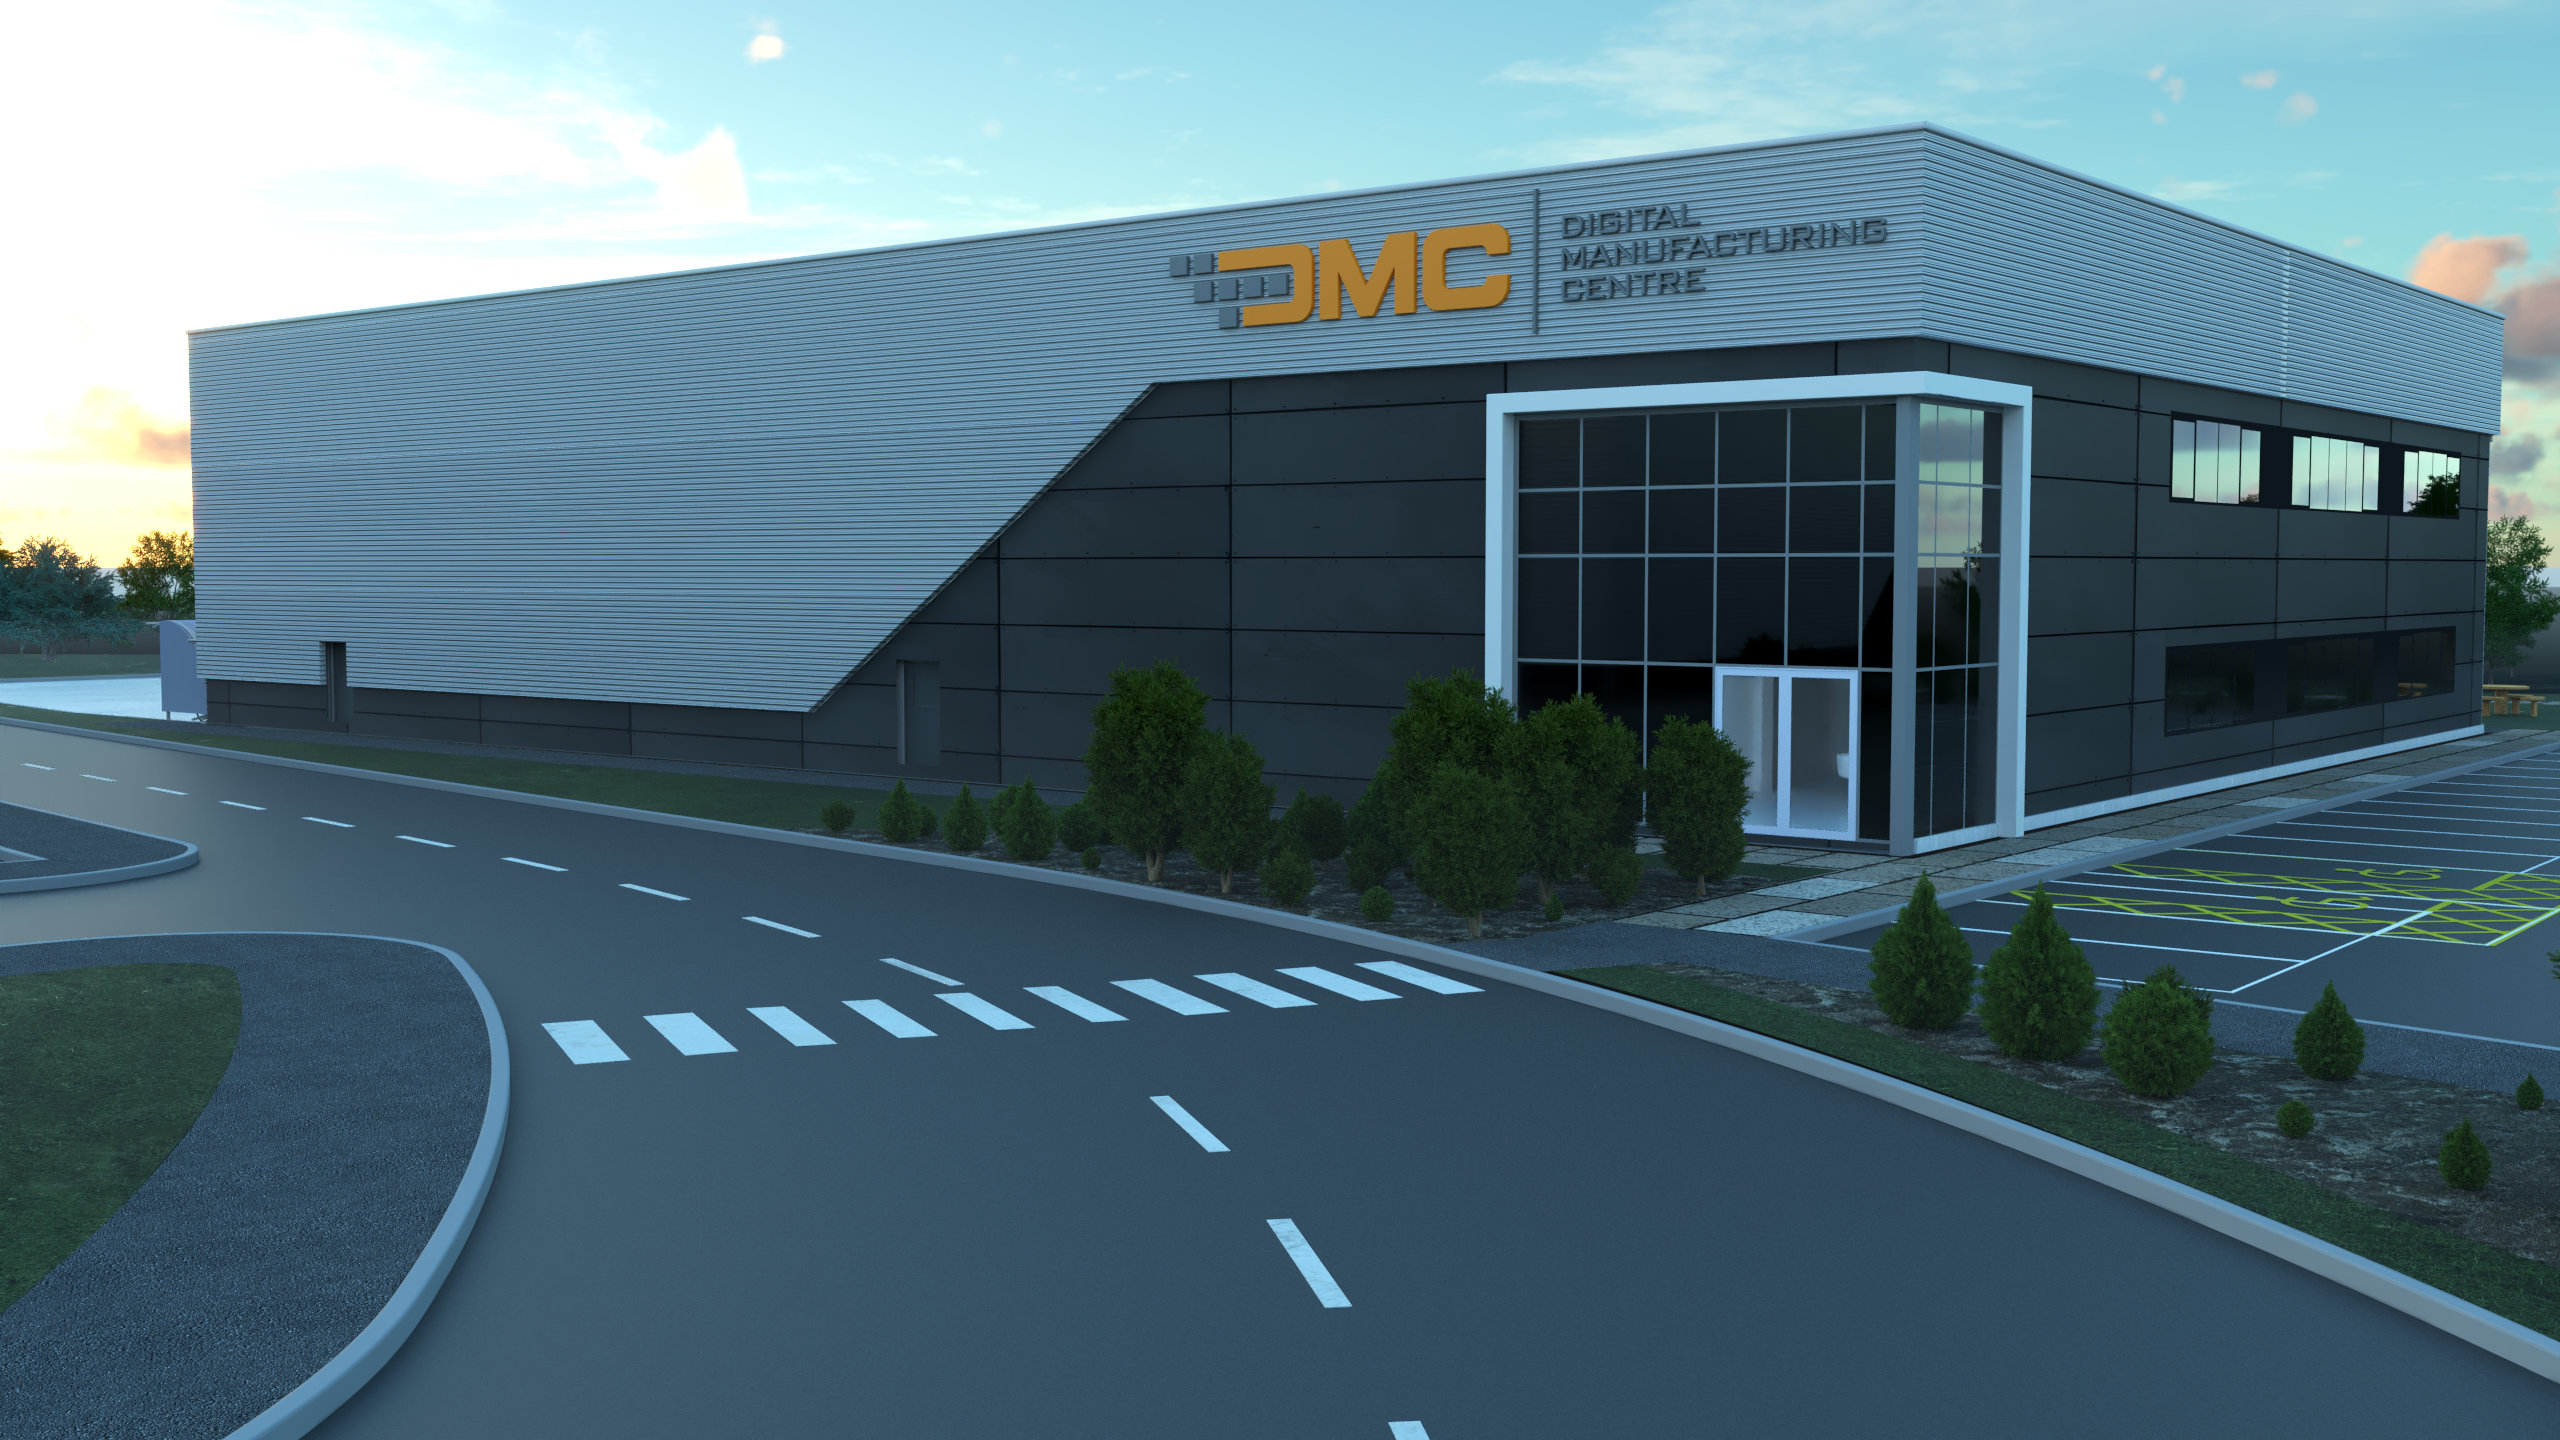 The Digital Manufacturing Center's headquarters. Image via DyeMansion.